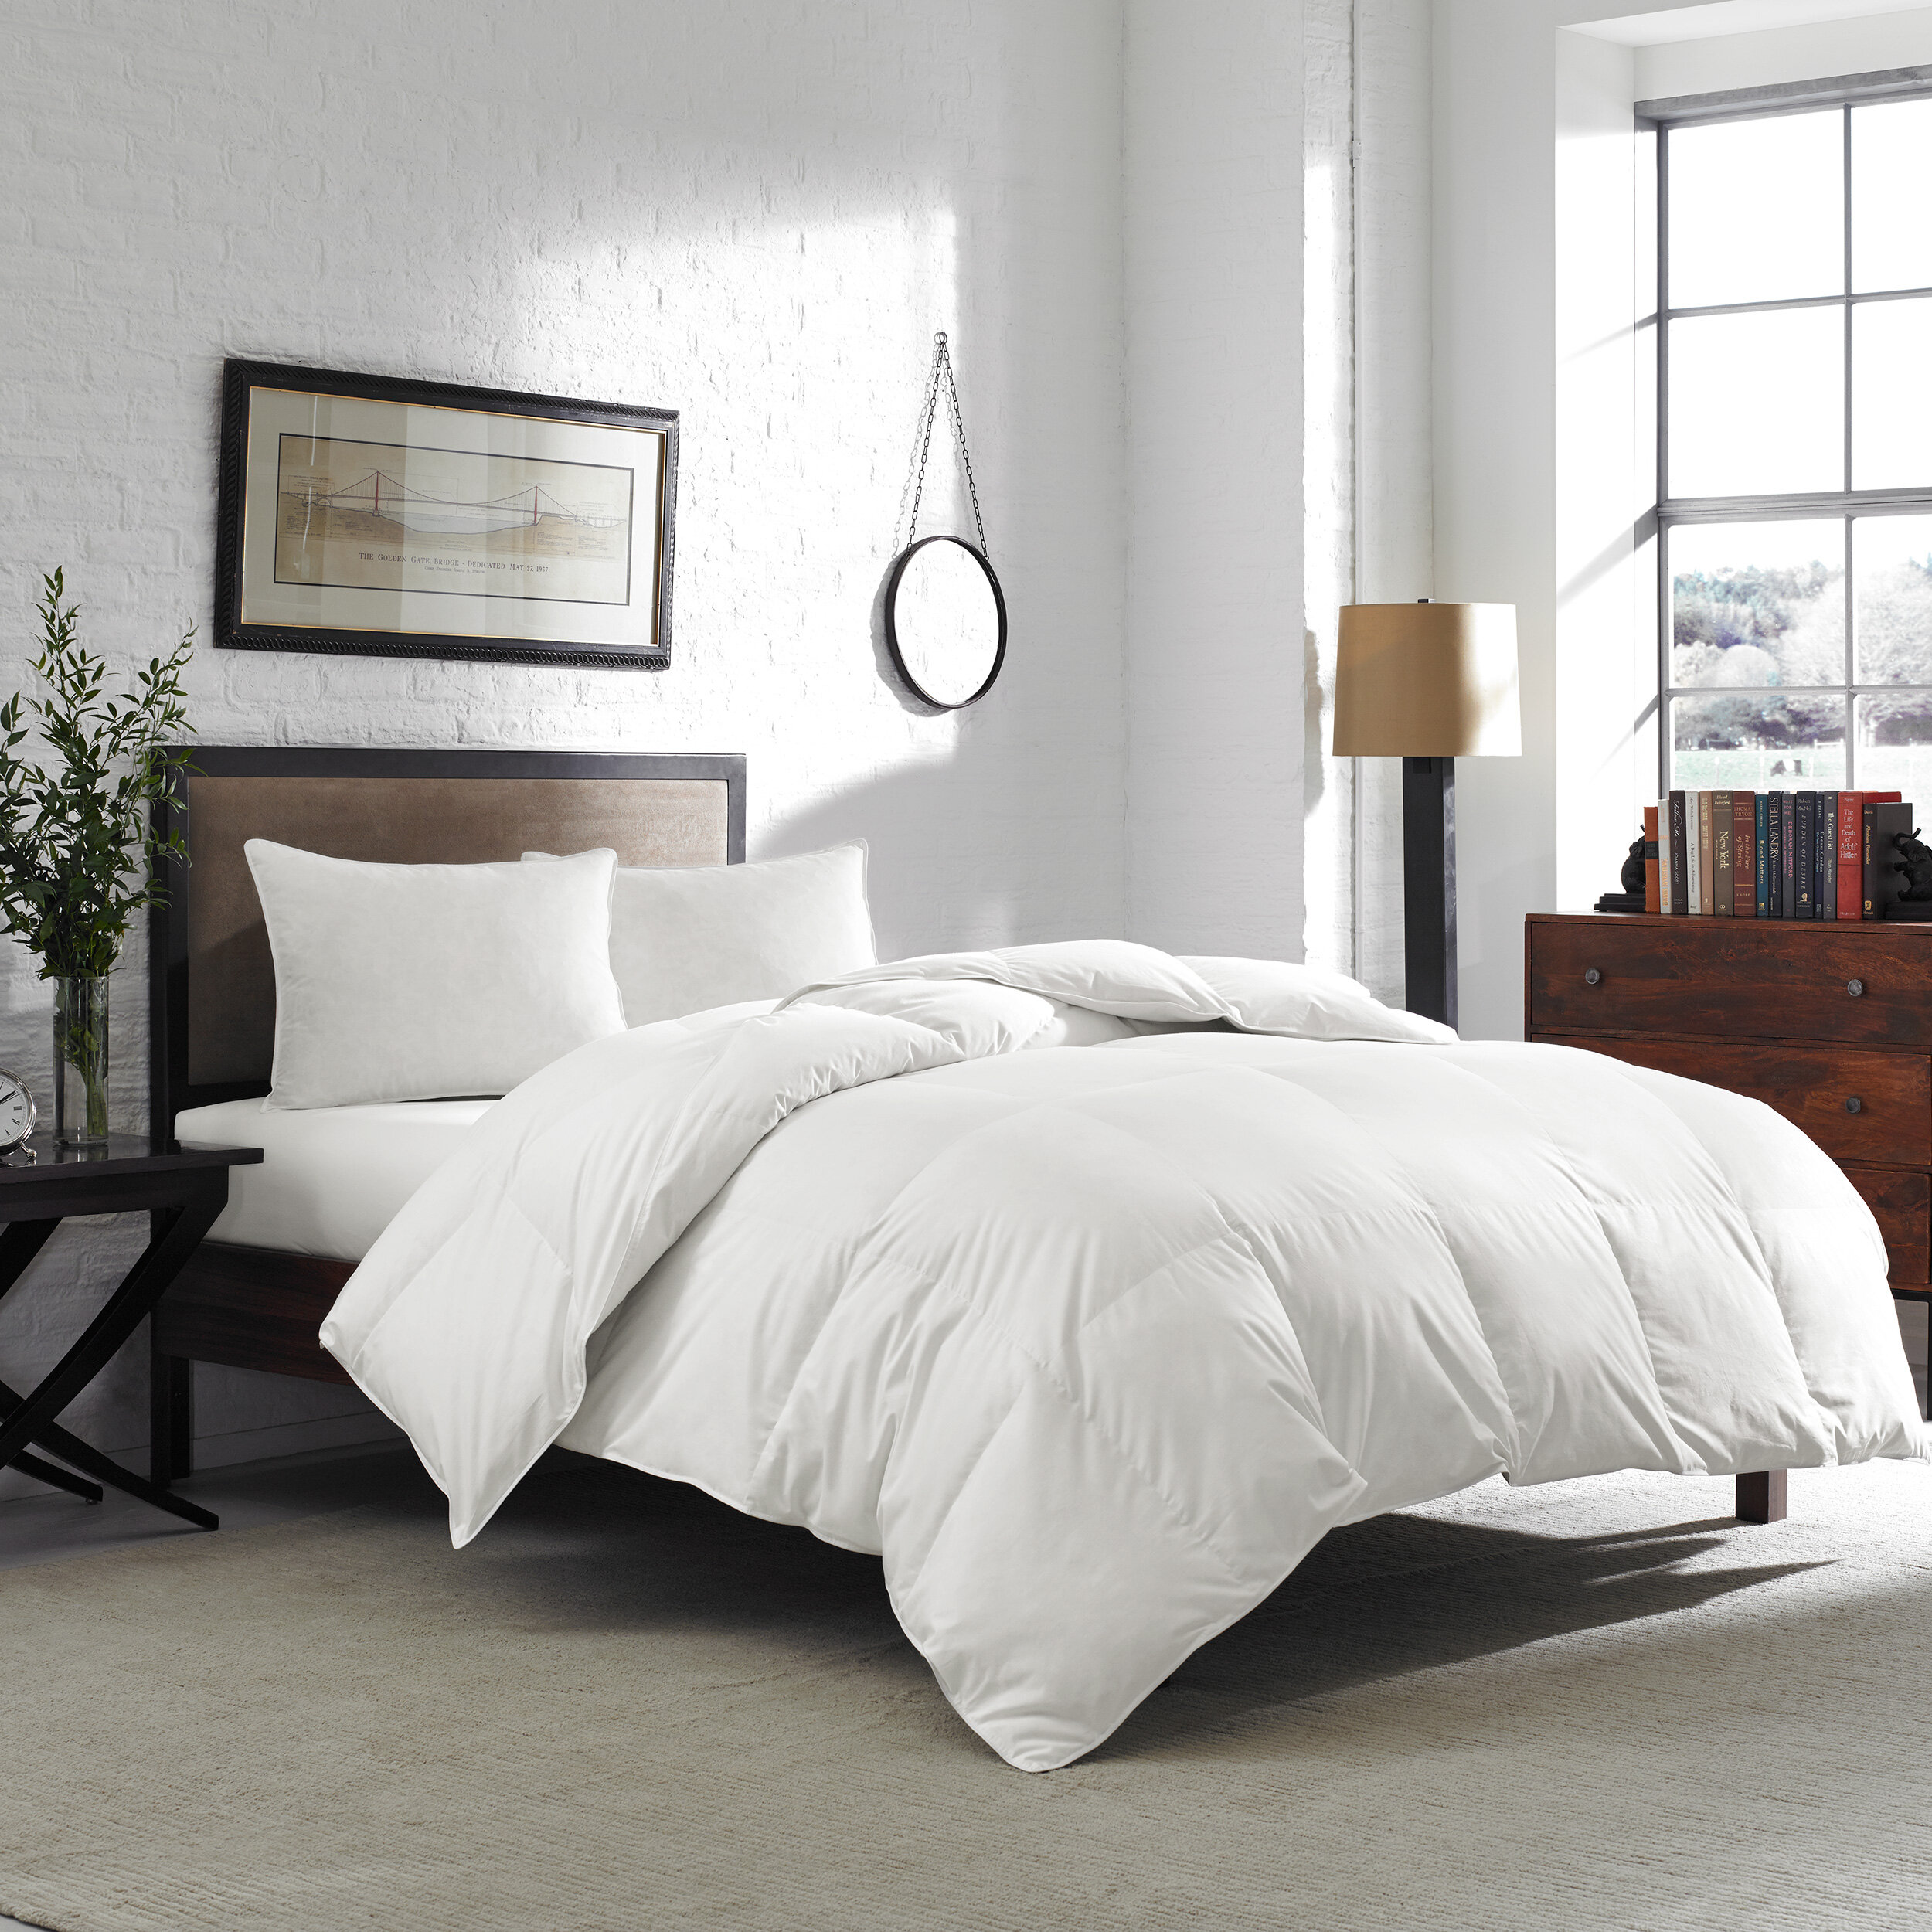 comforter down duck whyte cheap products comforters